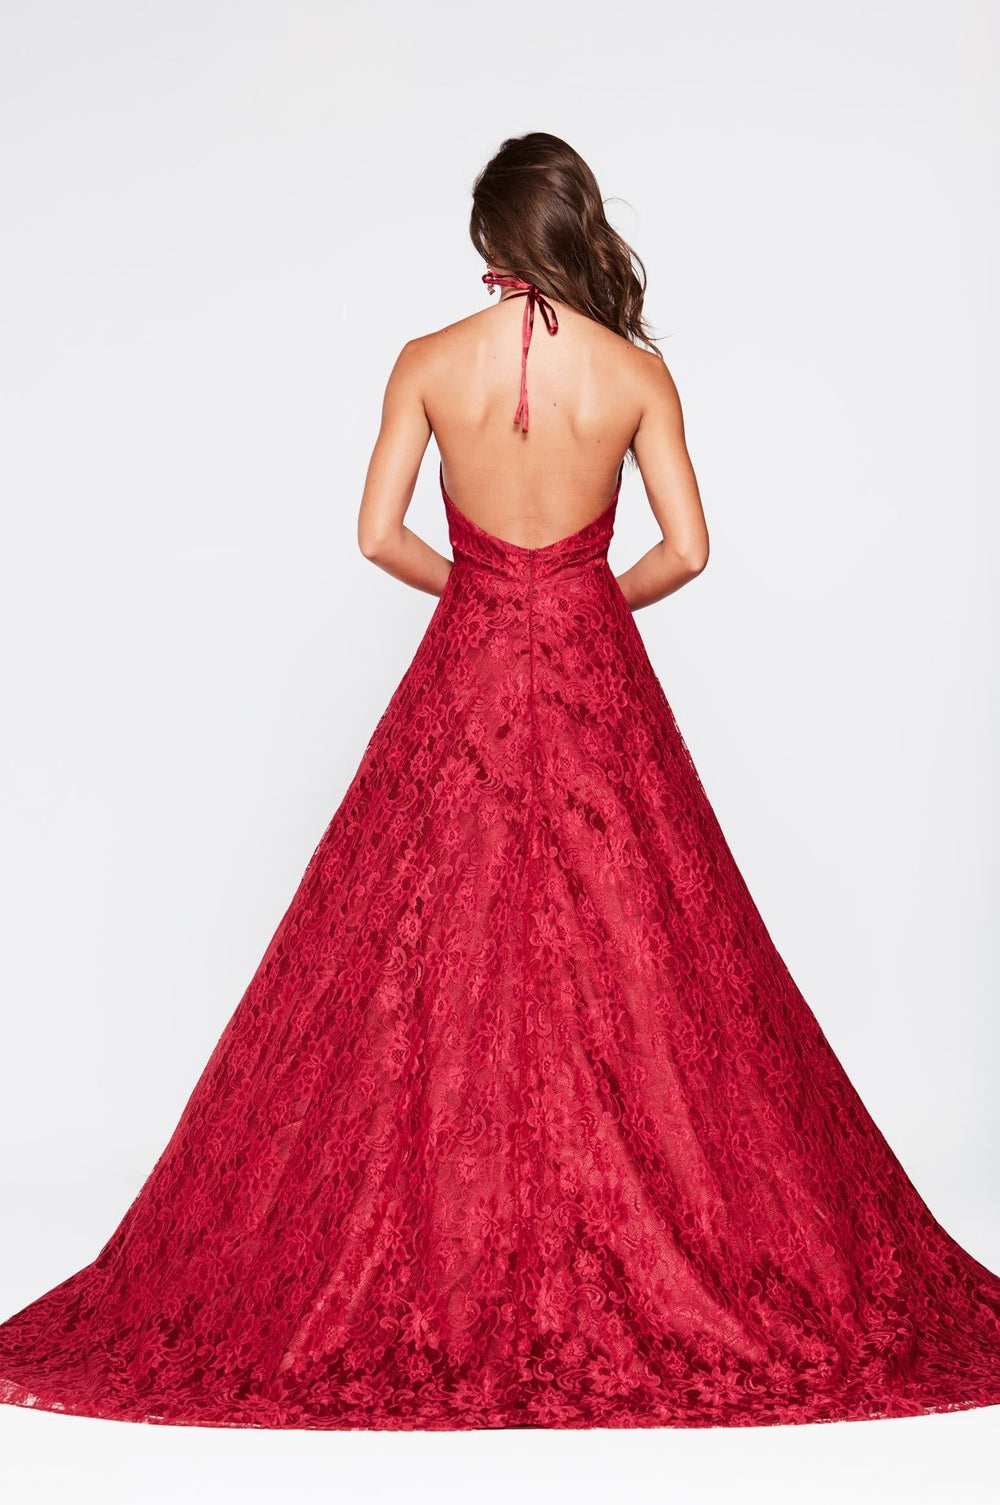 A&N Frida -Red Lace Formal Gown with Plunging Neckline and Low Back